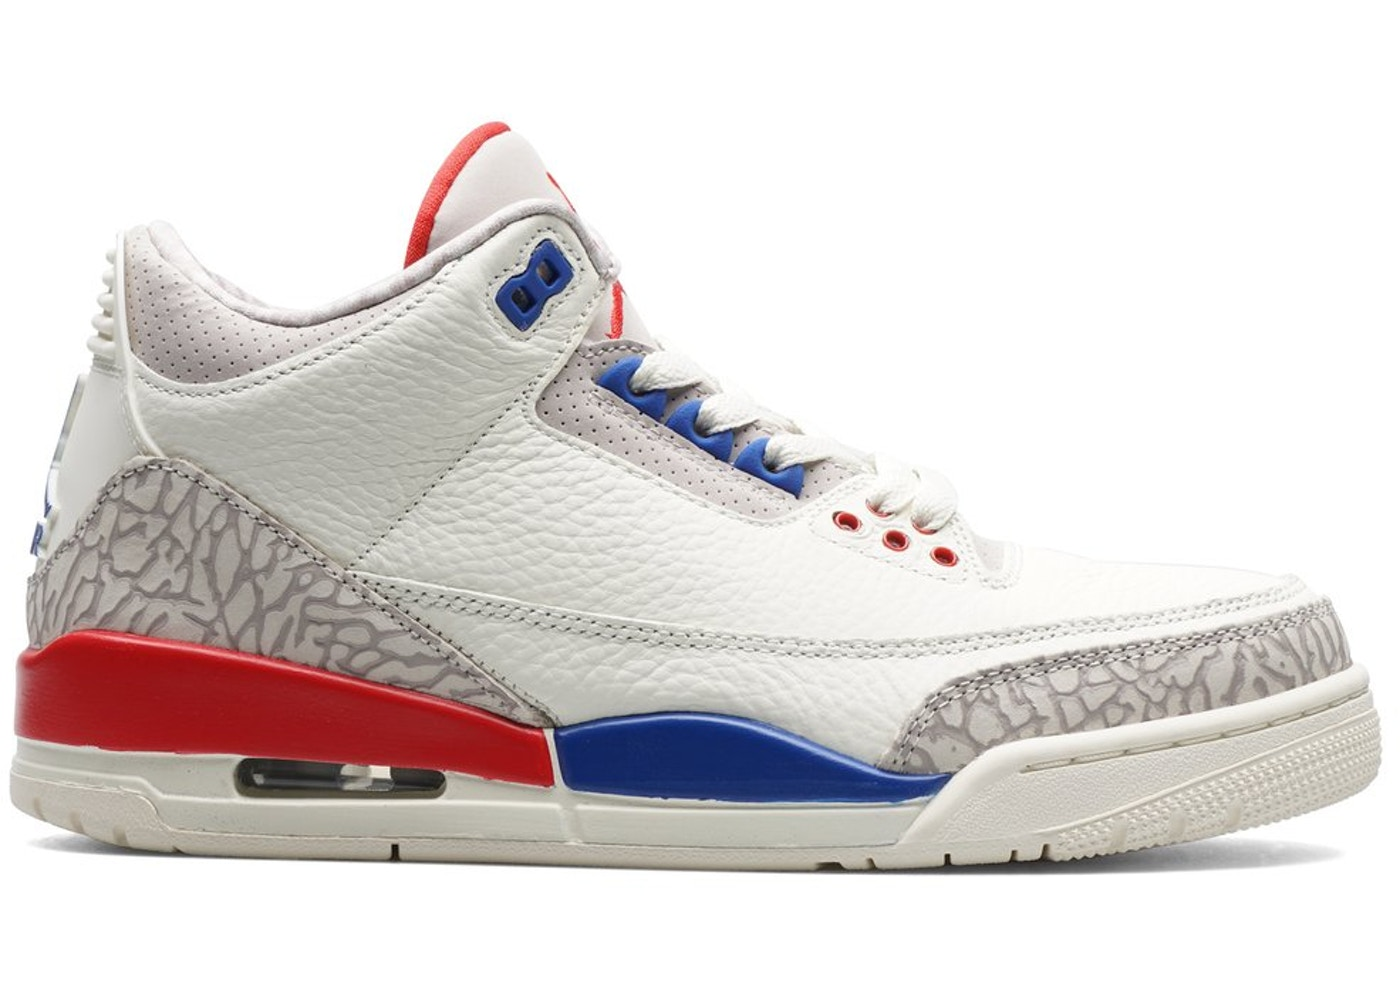 d1f75dad9140 Buy Air Jordan 3 Shoes   Deadstock Sneakers